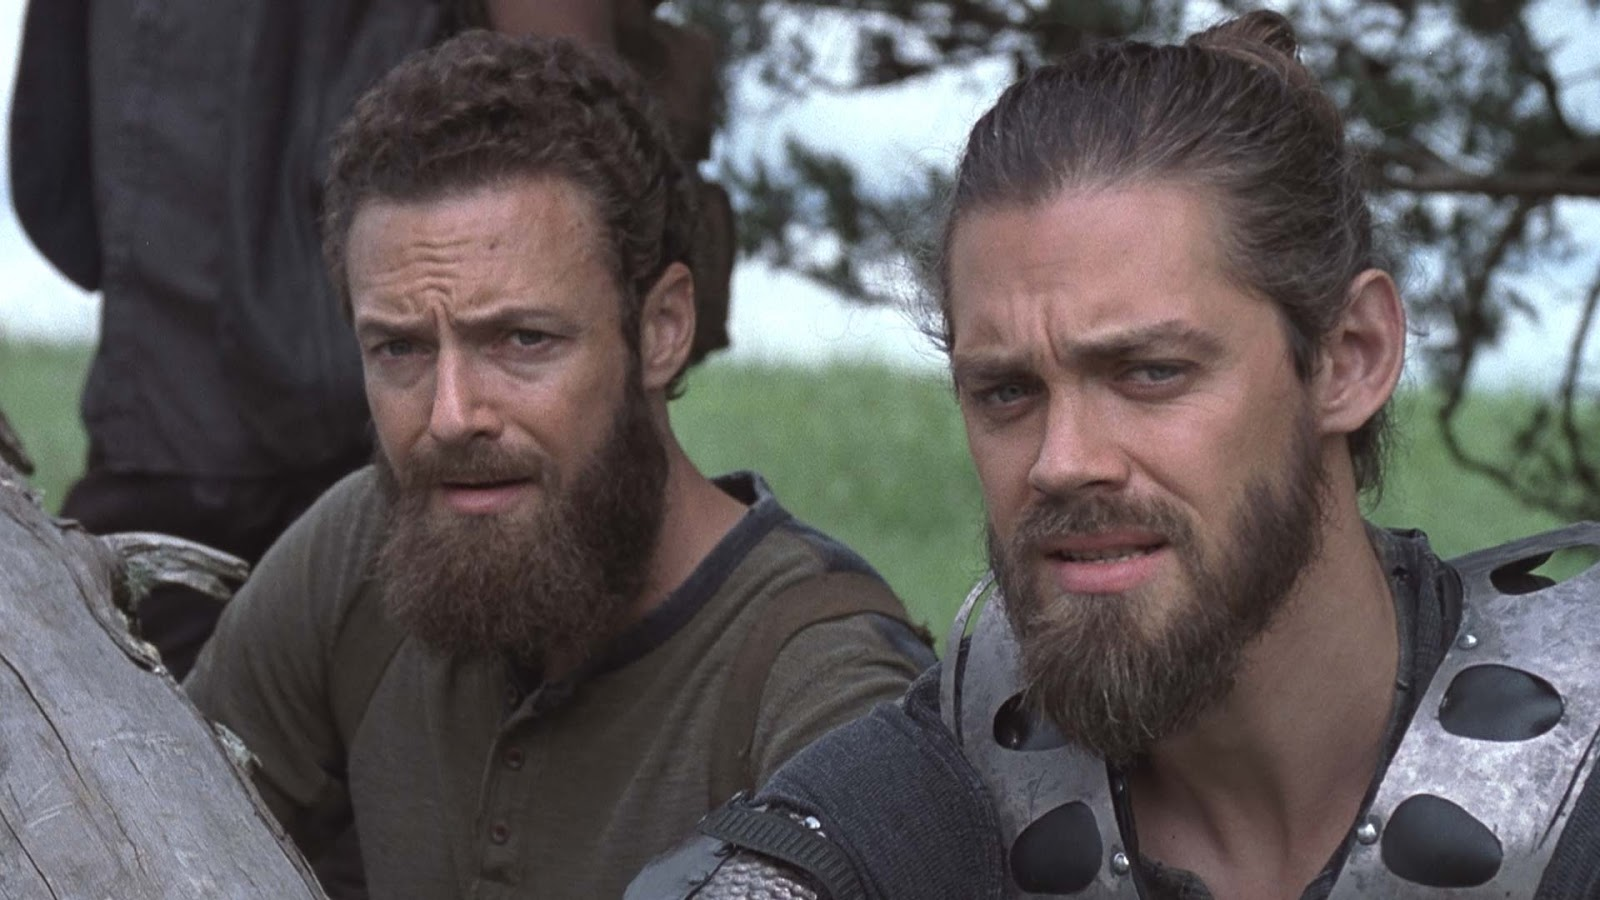 Aaron y Jesus, en el episodios 9x08 Evolution de The Walking Dead